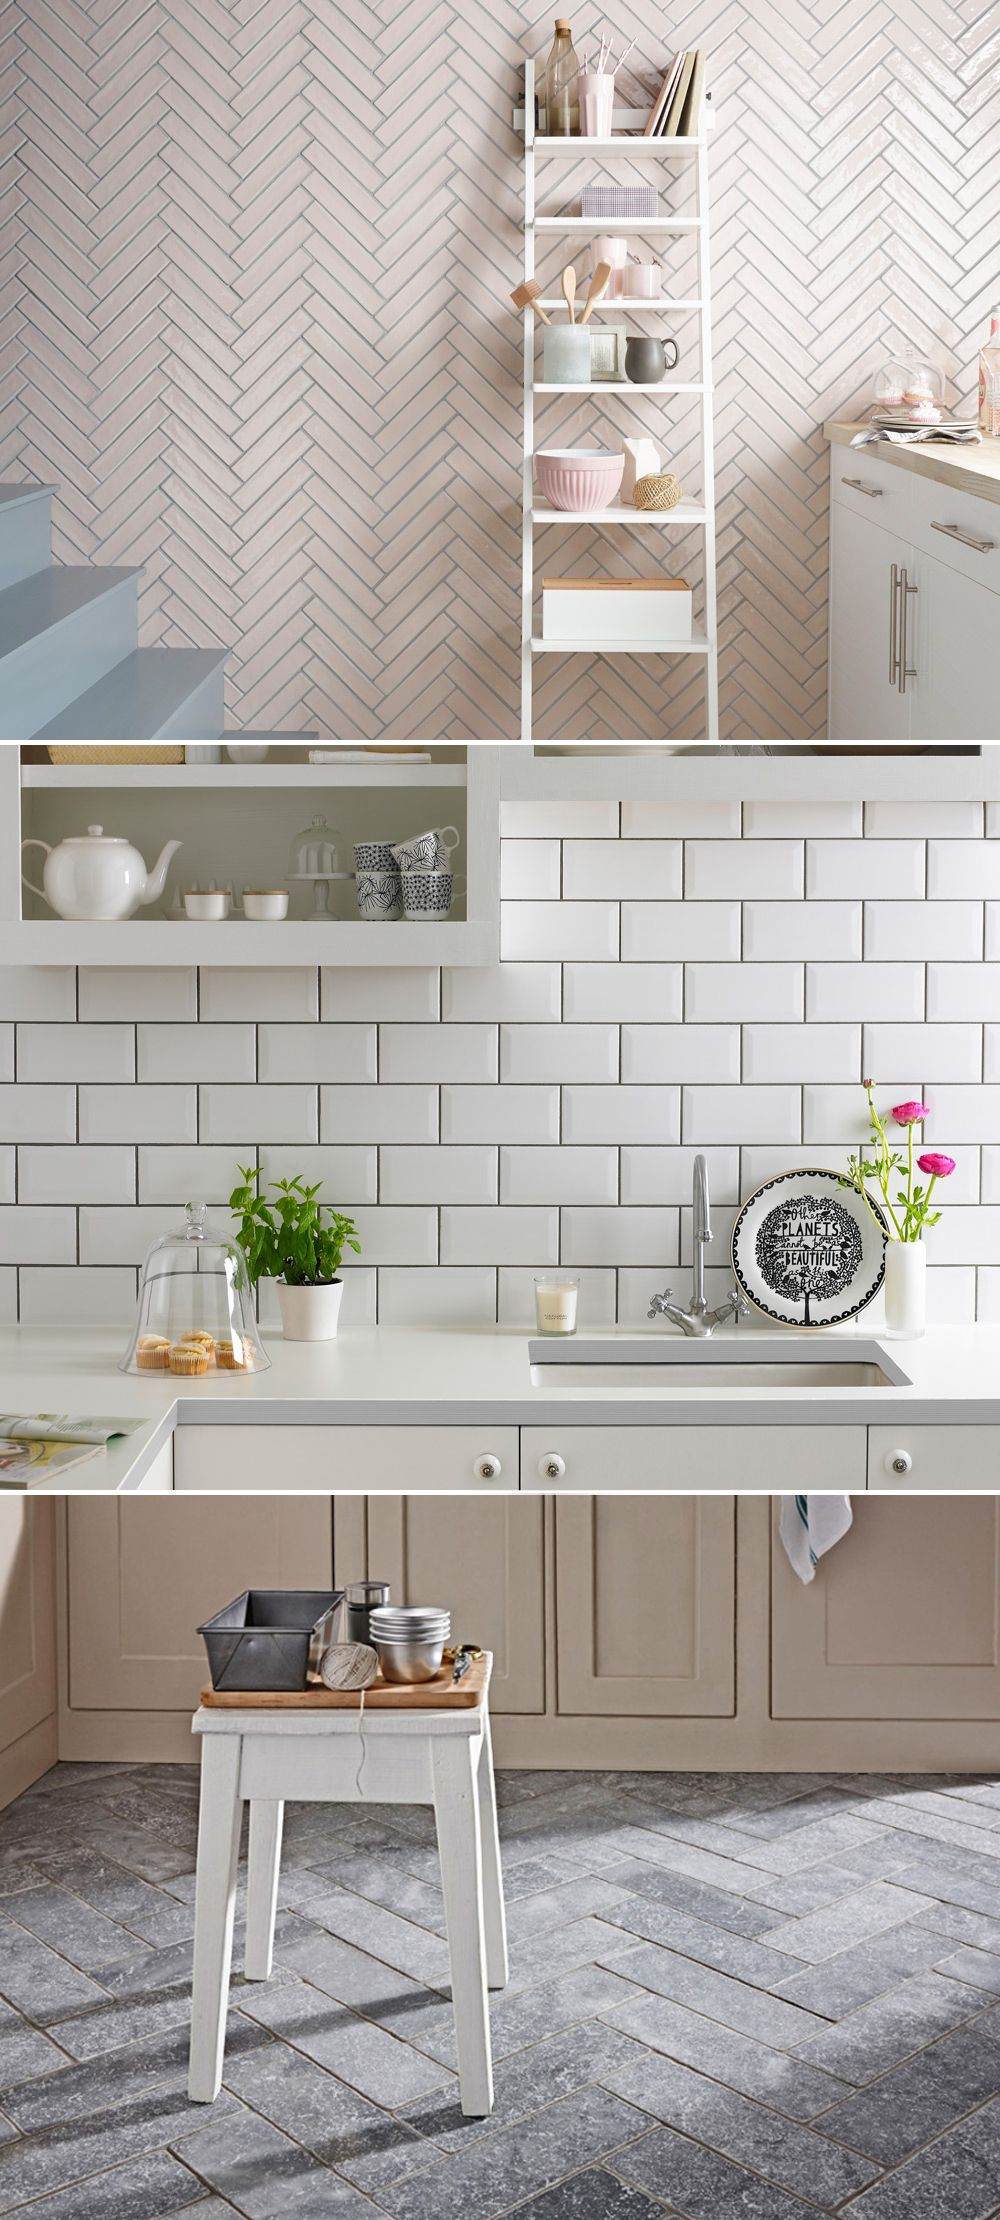 tiling trends from topps tiles kitchen interior home kitchens interior on kitchen interior tiles id=14682